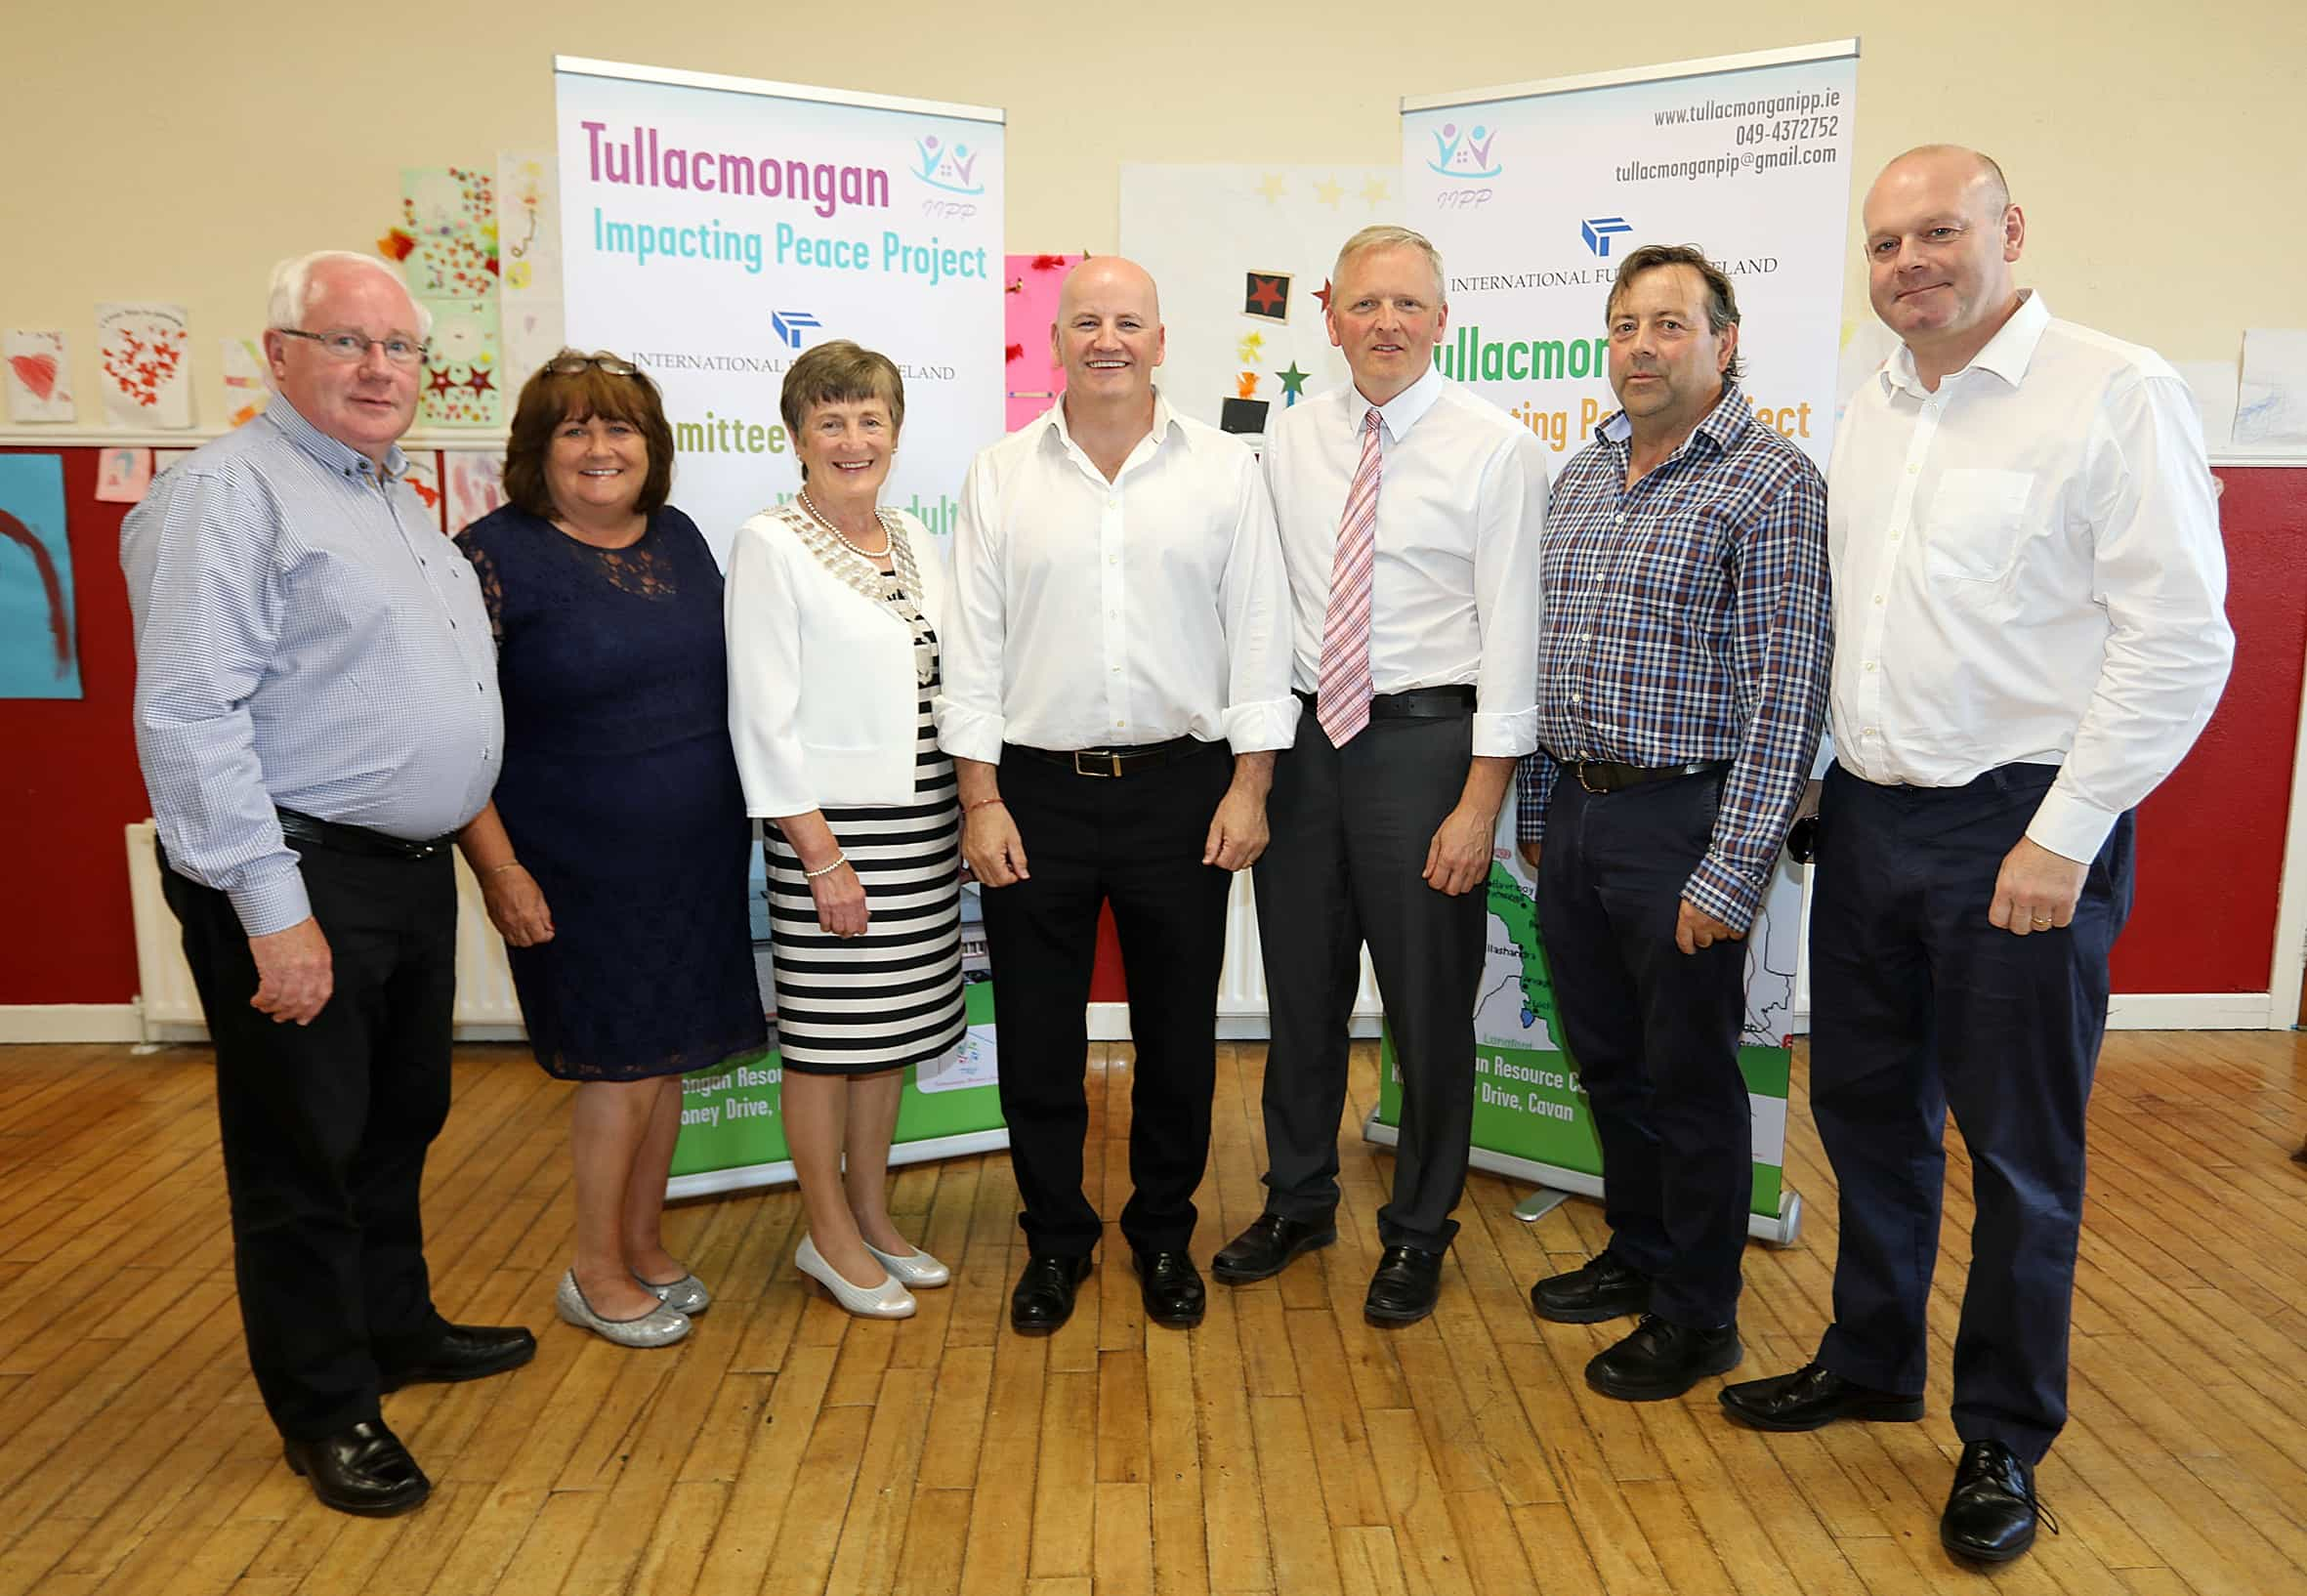 Tullacmongan Impacting Peace Programme (TIPP) officially launched